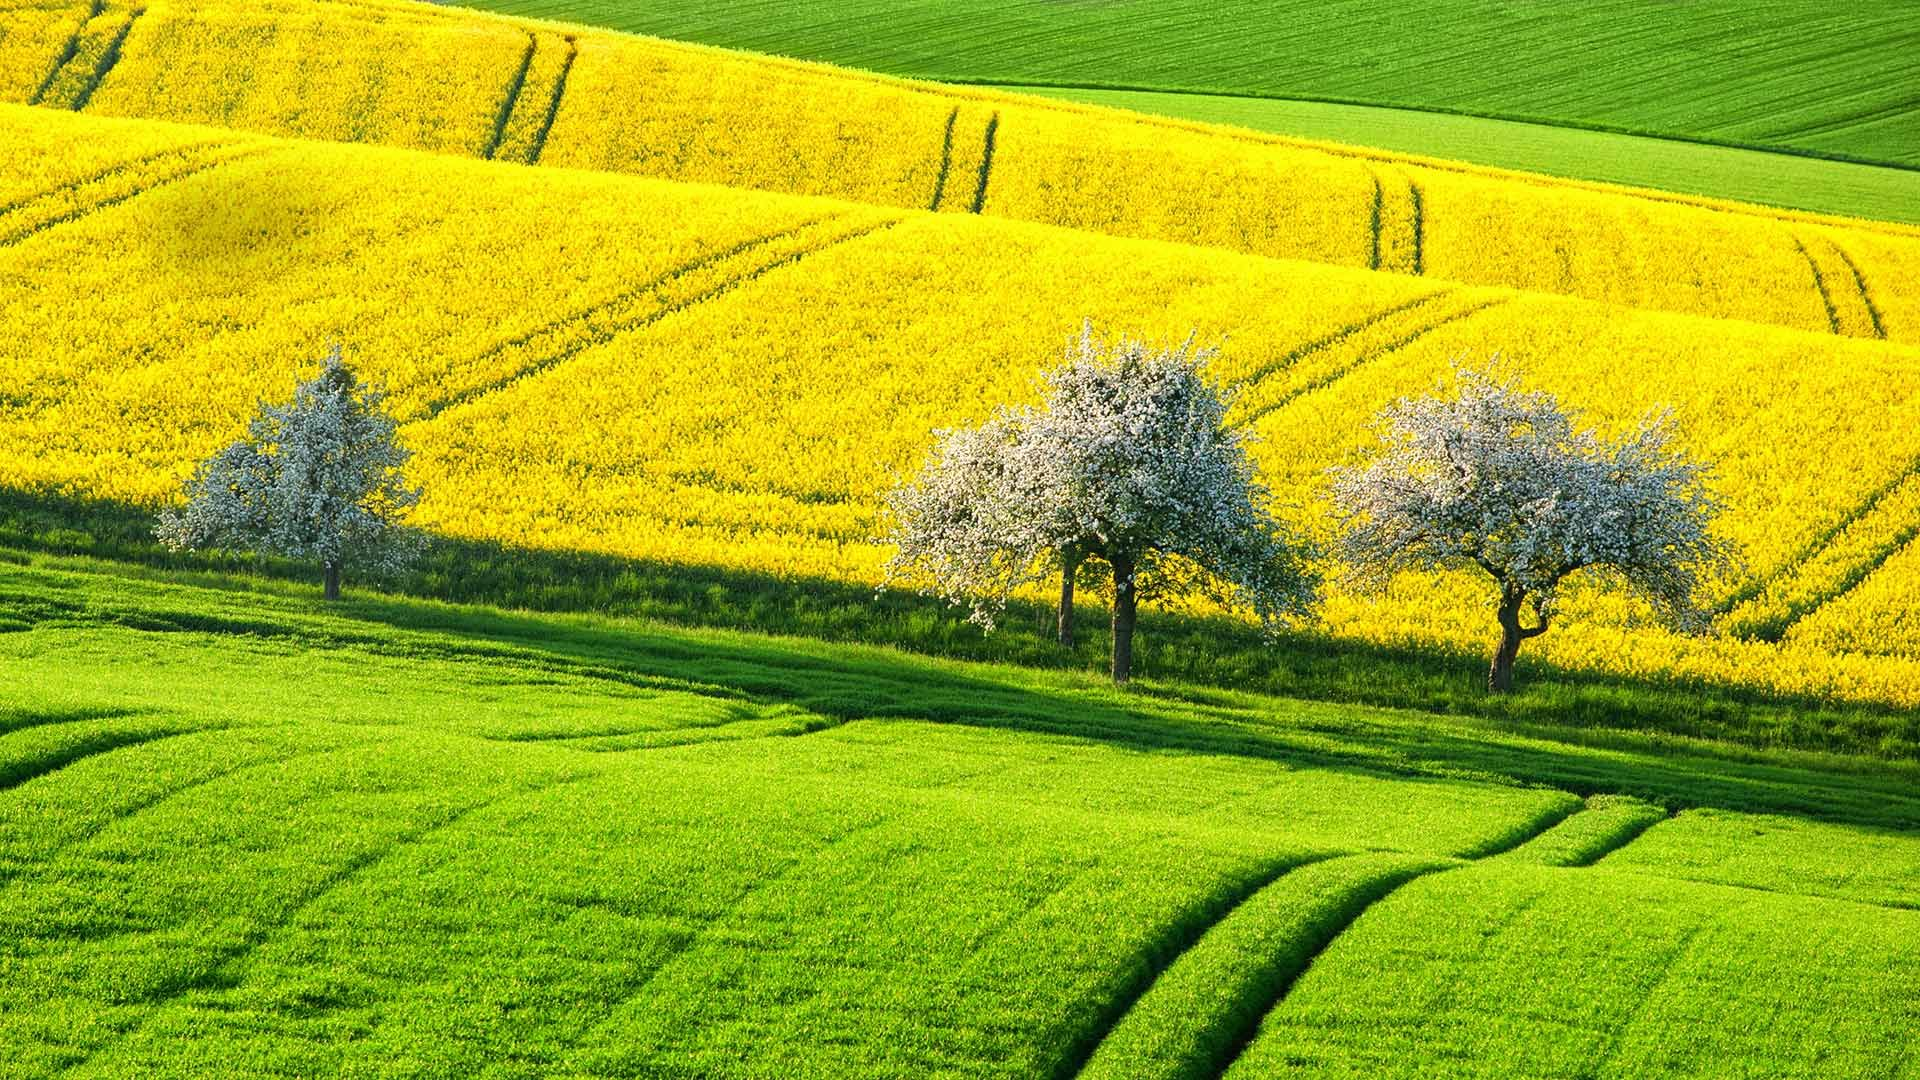 Canola fields in spring | Canola fields in spring, Germany (© Boris Stroujko/Shutterstock)